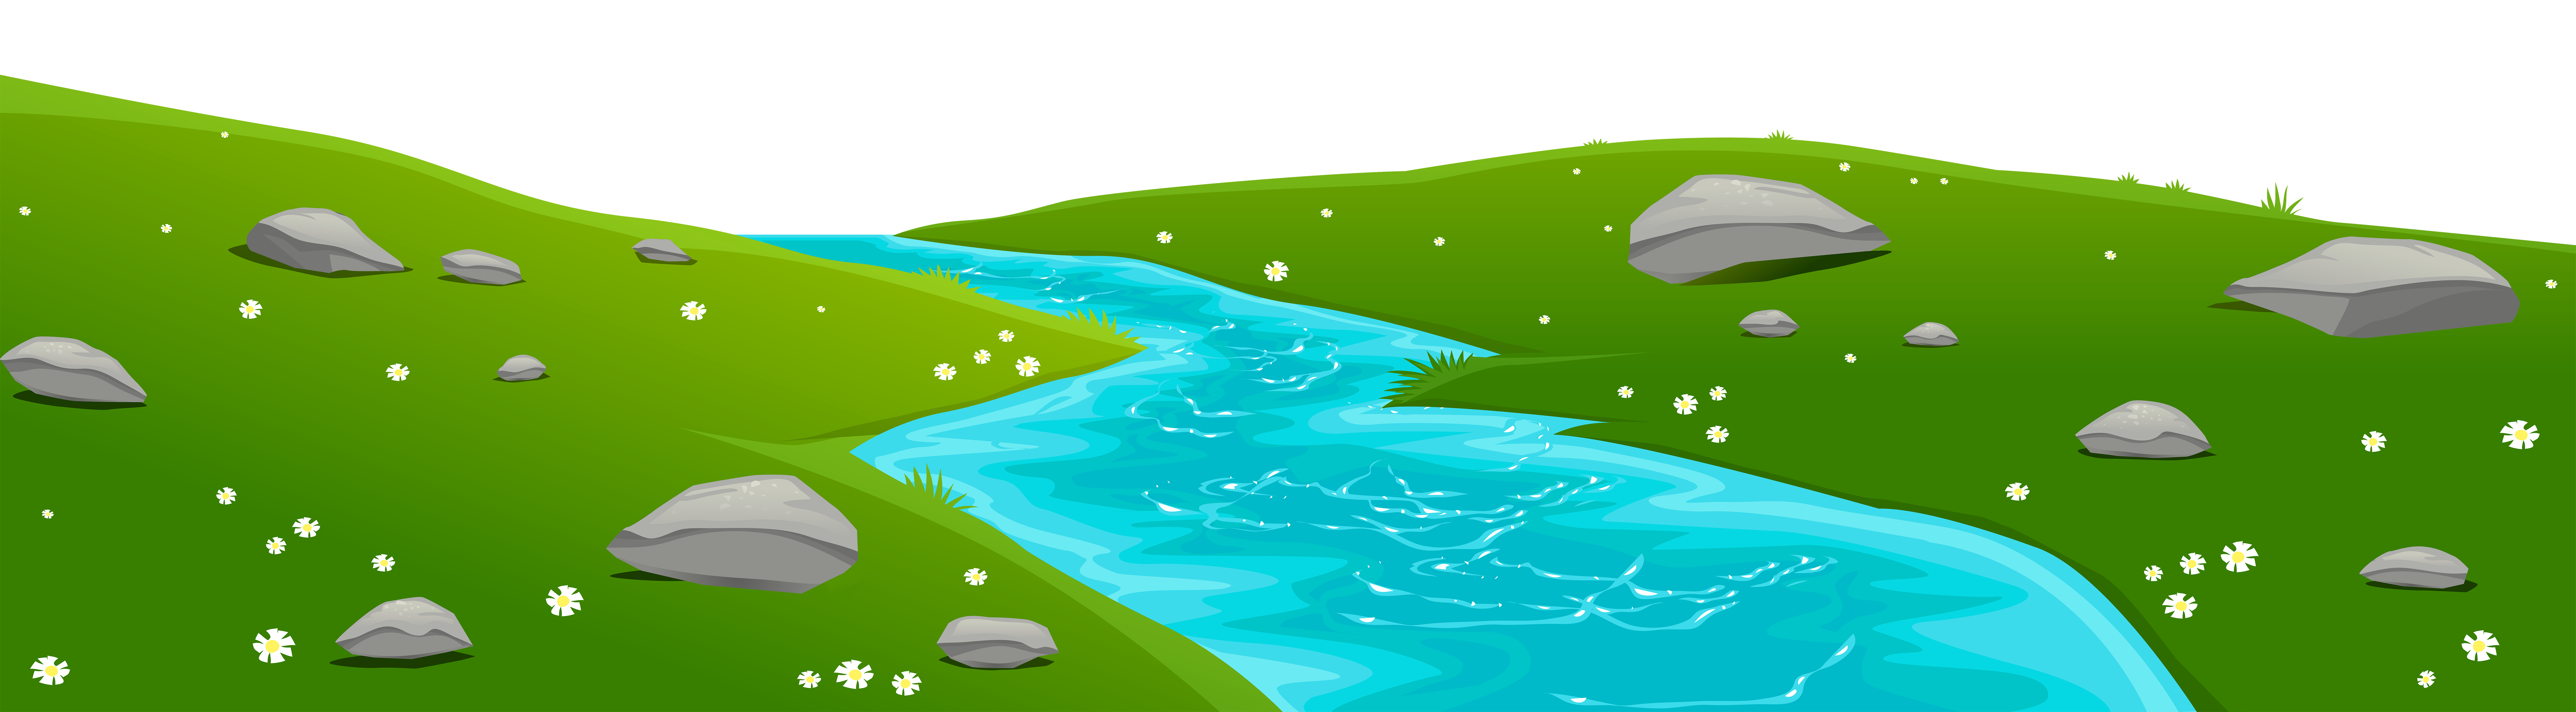 Clipart of a river clipart transparent download River Ground Cover Transparent PNG Clip Art Image clipart transparent download